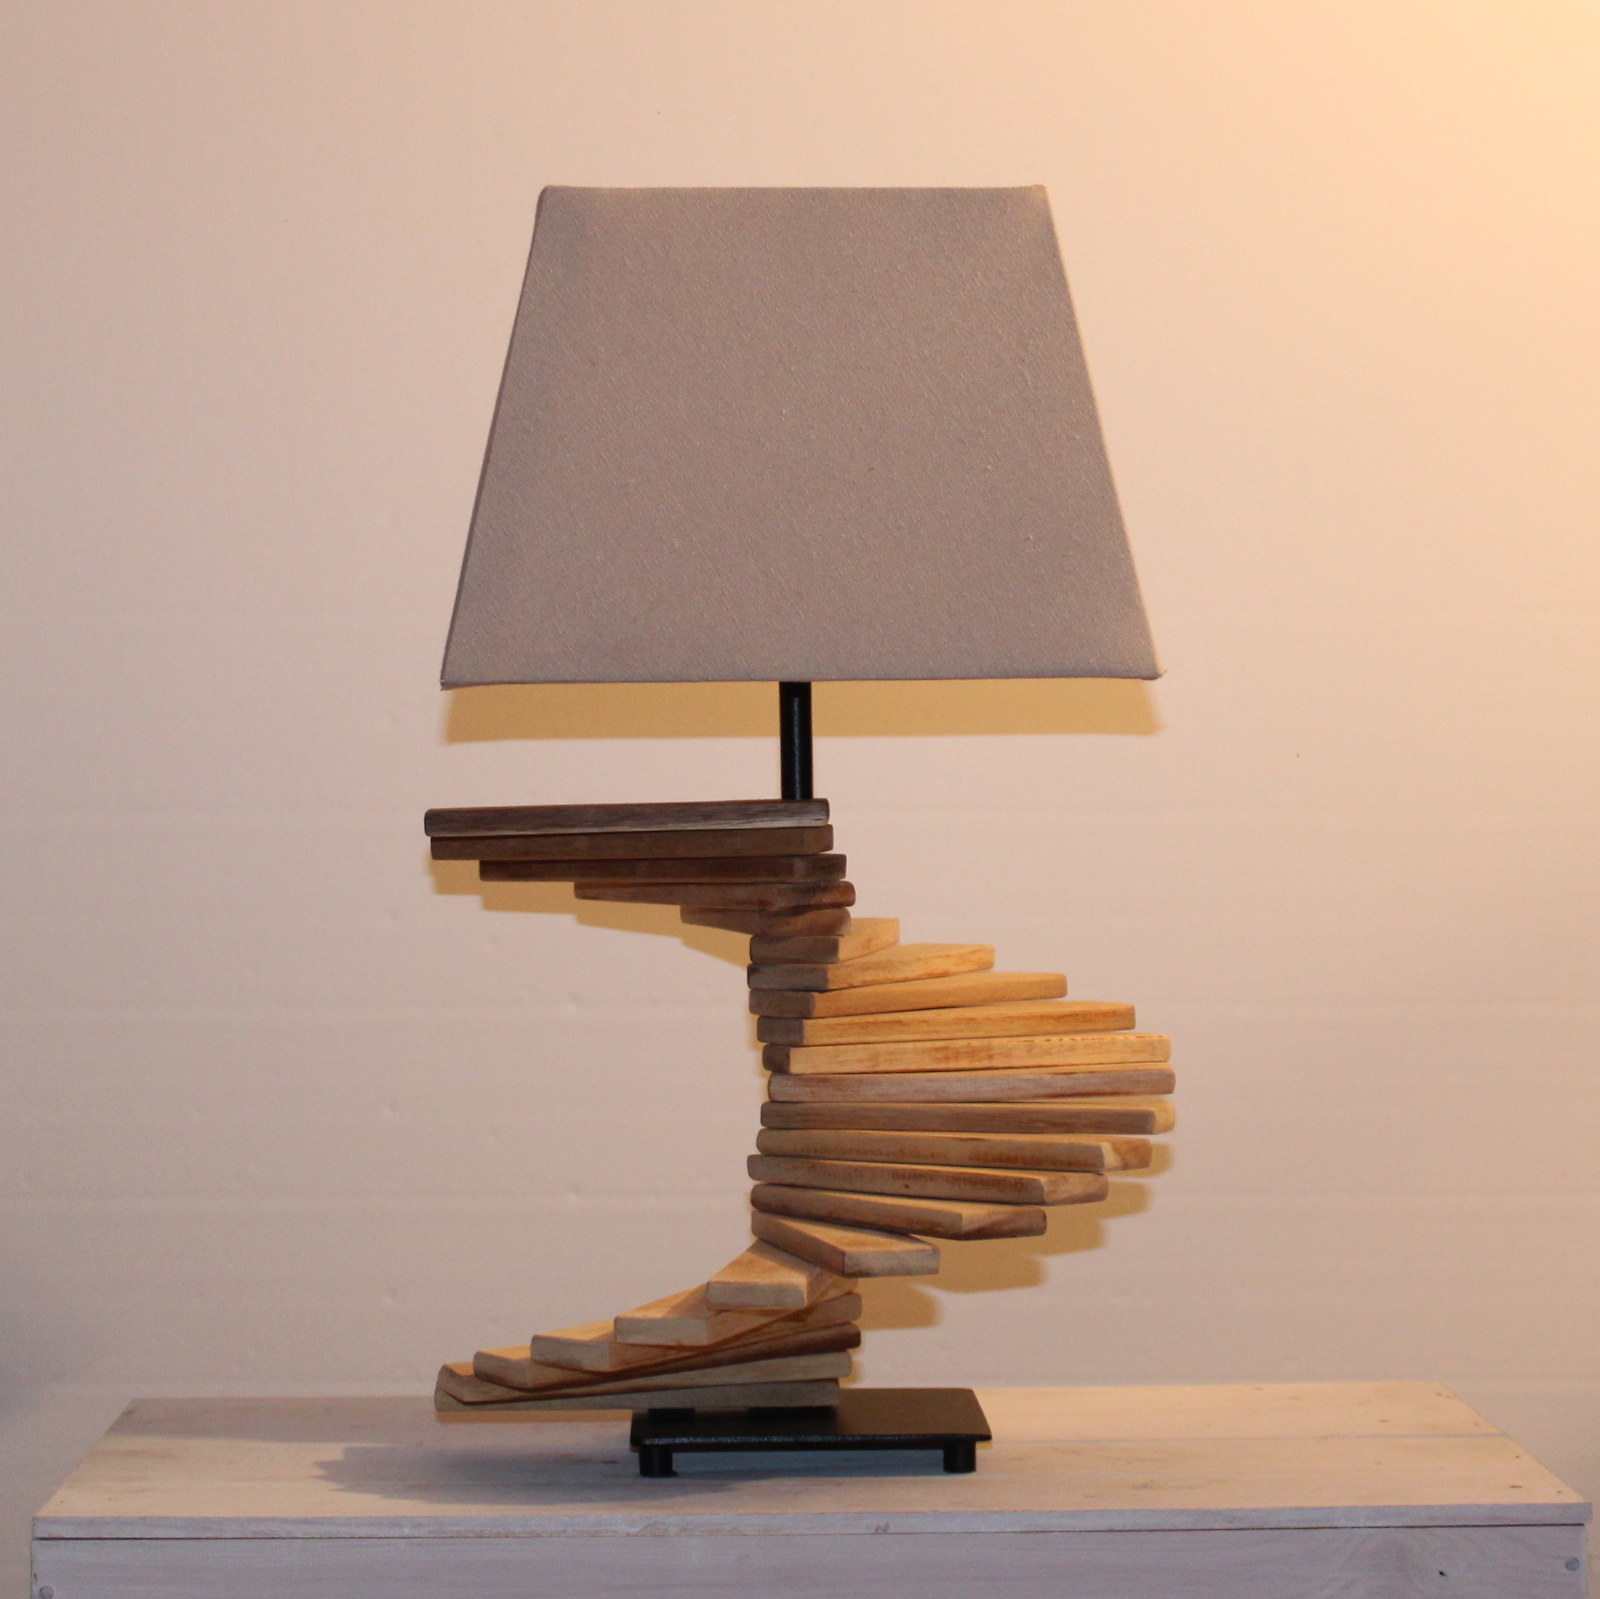 Lampe in Treppenstyle.